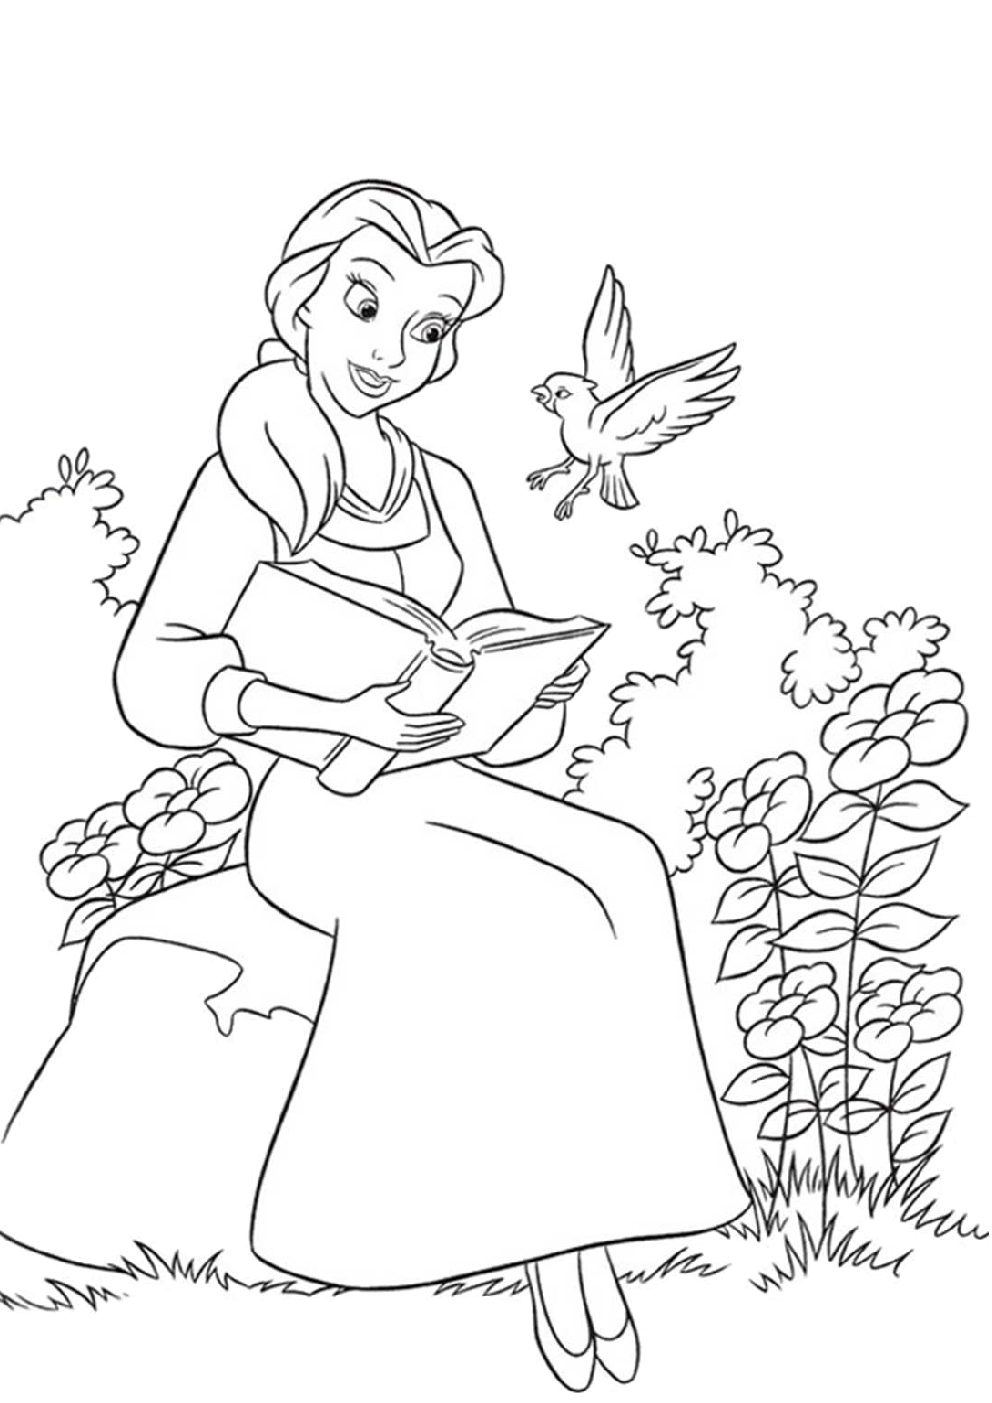 coloring pages beauty and the beast kids n funcom 41 coloring pages of beauty and the beast coloring pages the and beauty beast